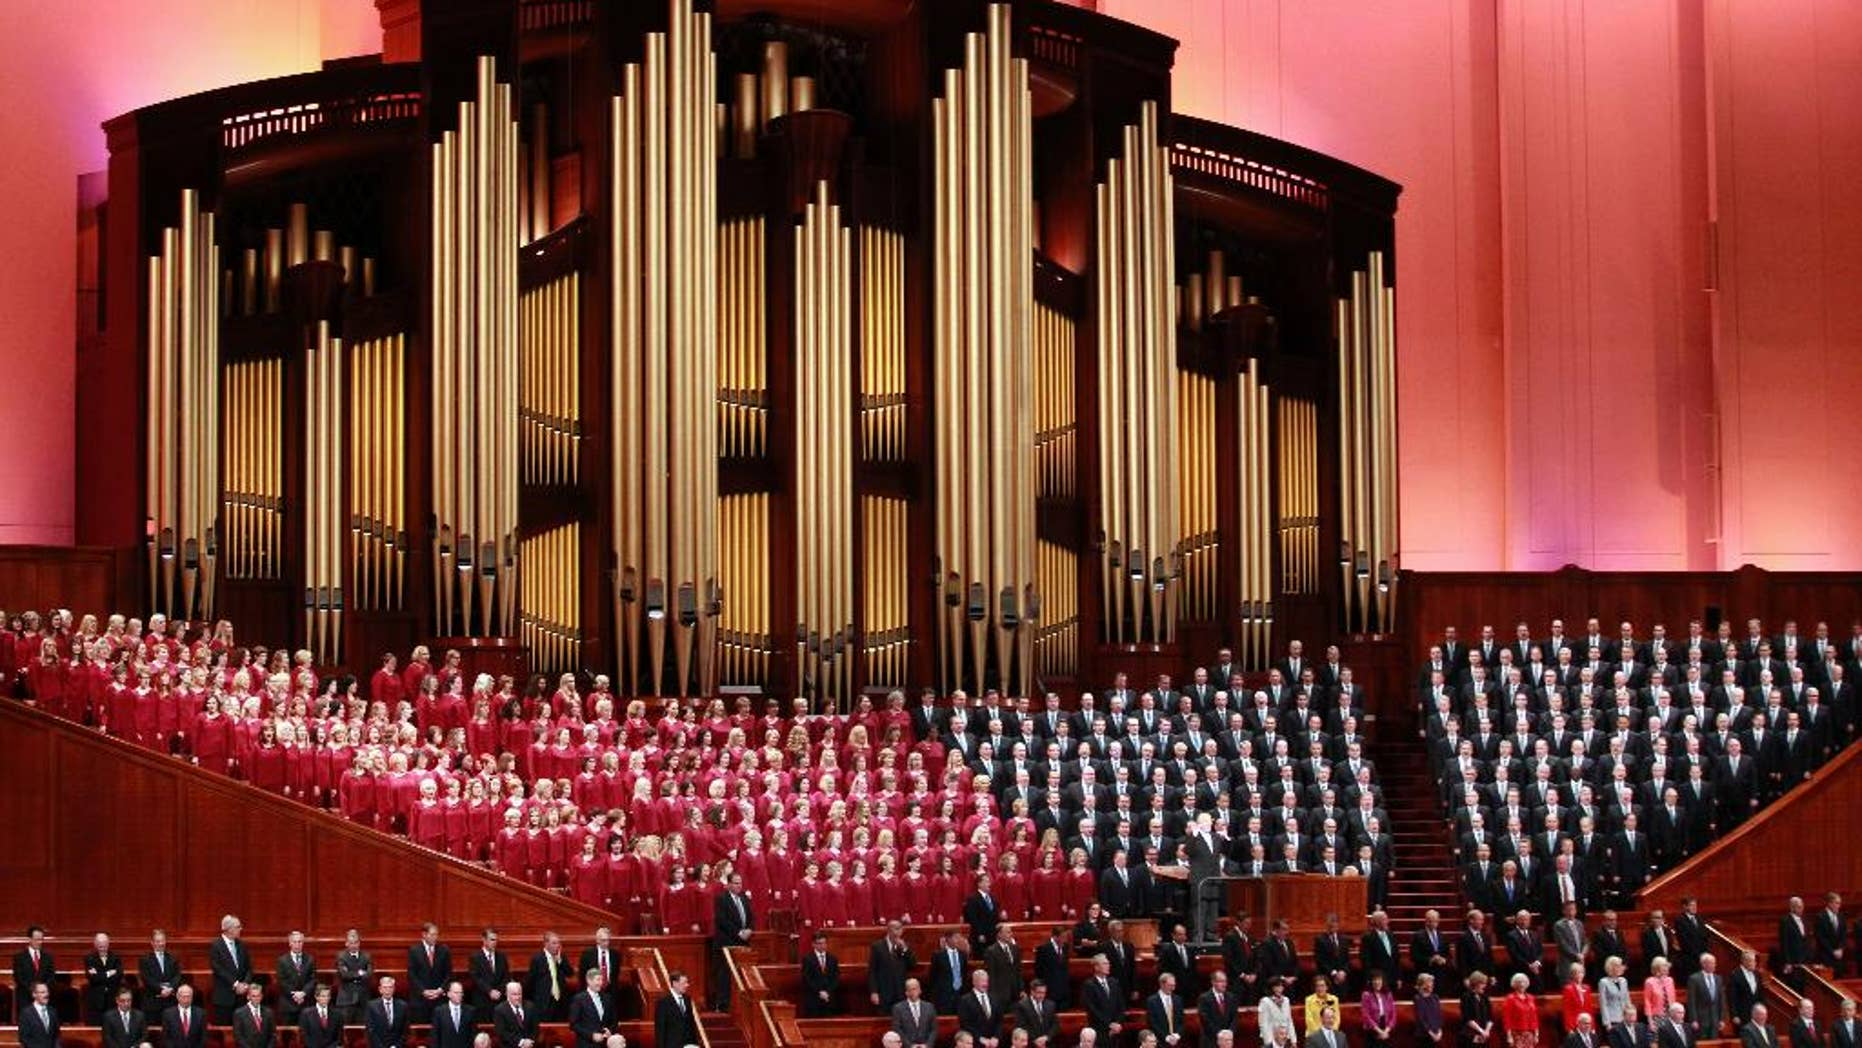 "FILE - In this Oct. 1, 2016, file photo, the Mormon Tabernacle Choir of The Church of Jesus Christ of Latter-day Saints, sings in the Conference Center at the morning session of the two-day Mormon church conference in Salt Lake City. Choir member Jan Chamberlin posted a resignation letter that she says she sent to choir leaders on her Facebook page Thursdaym Dec. 29, 2016. In it, she writes that by performing at the inaugural, the 360-member Choir will appear to be ""endorsing tyranny and facism"" and says she feels ""betrayed"" by the choir's decision to take part. (AP Photo/George Frey, File)"